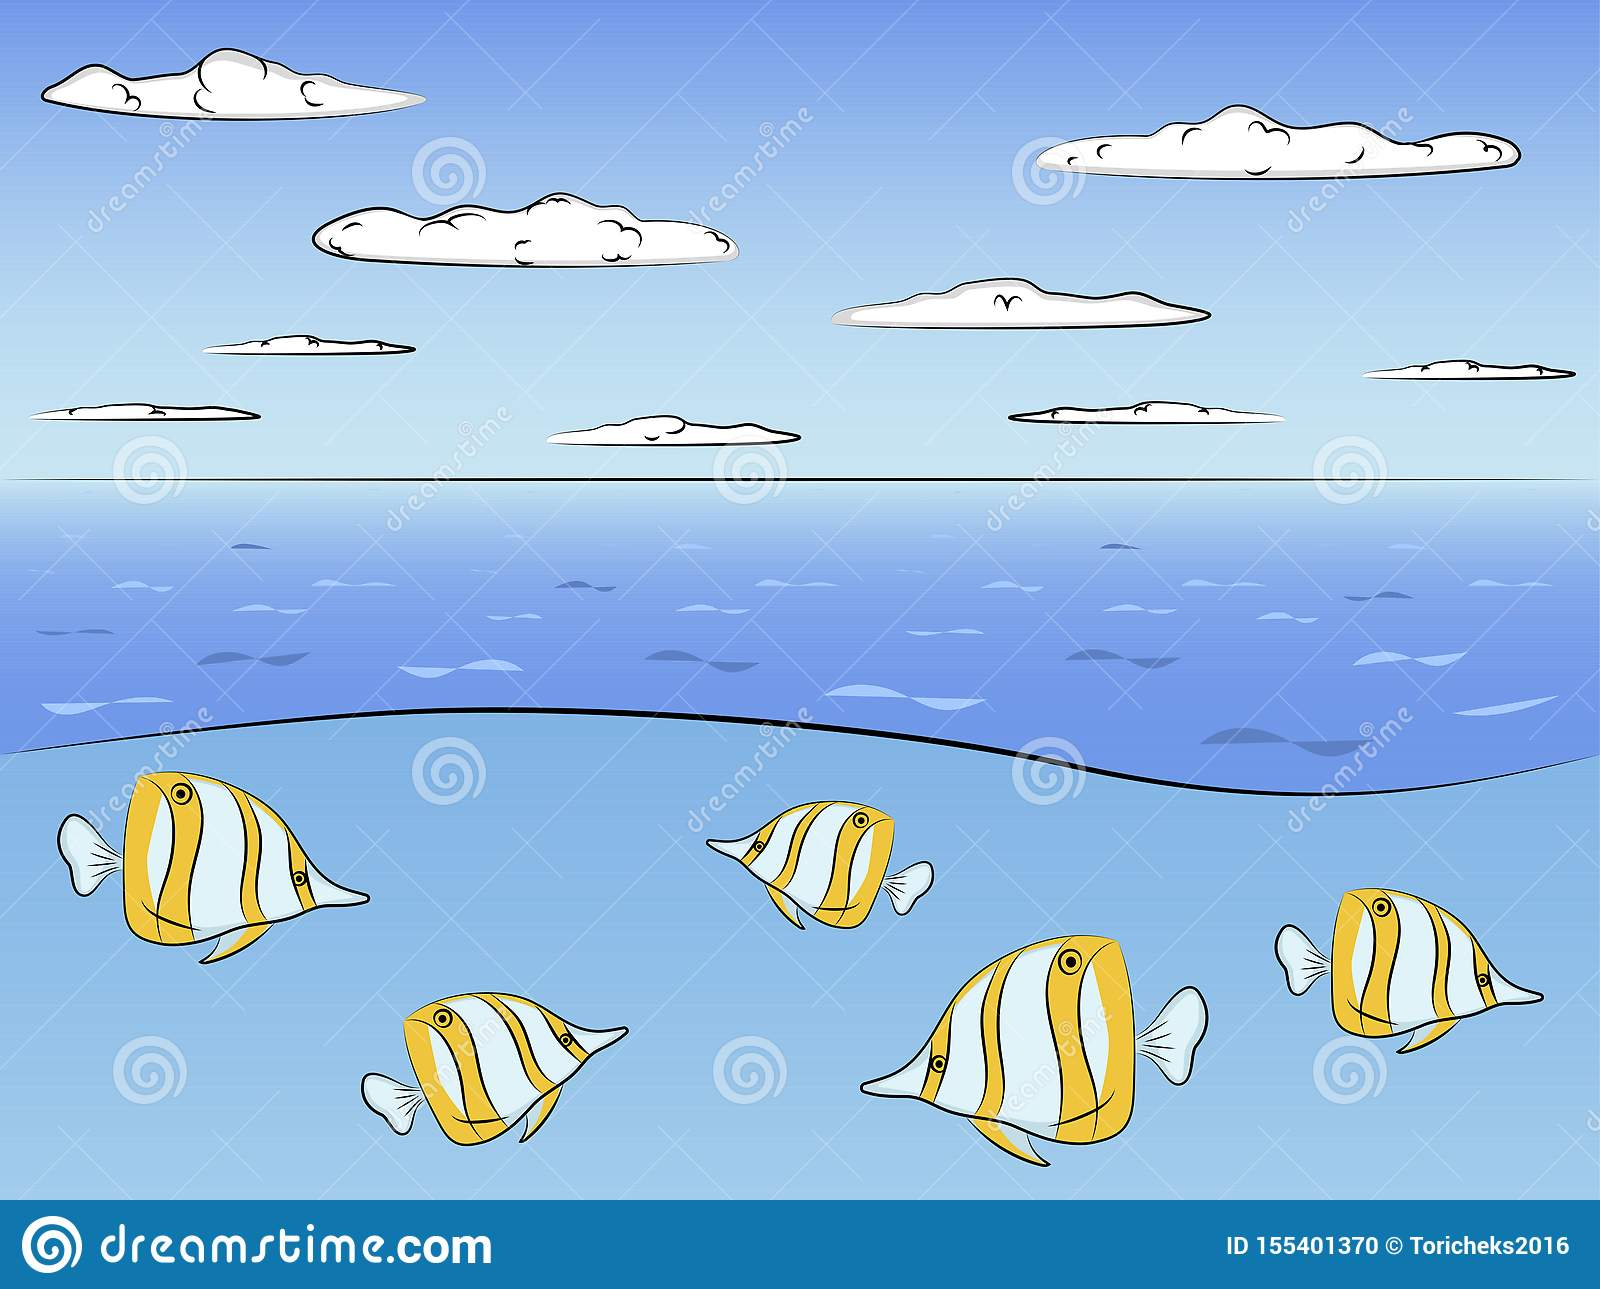 Ocean in the section. Fish Evistias. Raster